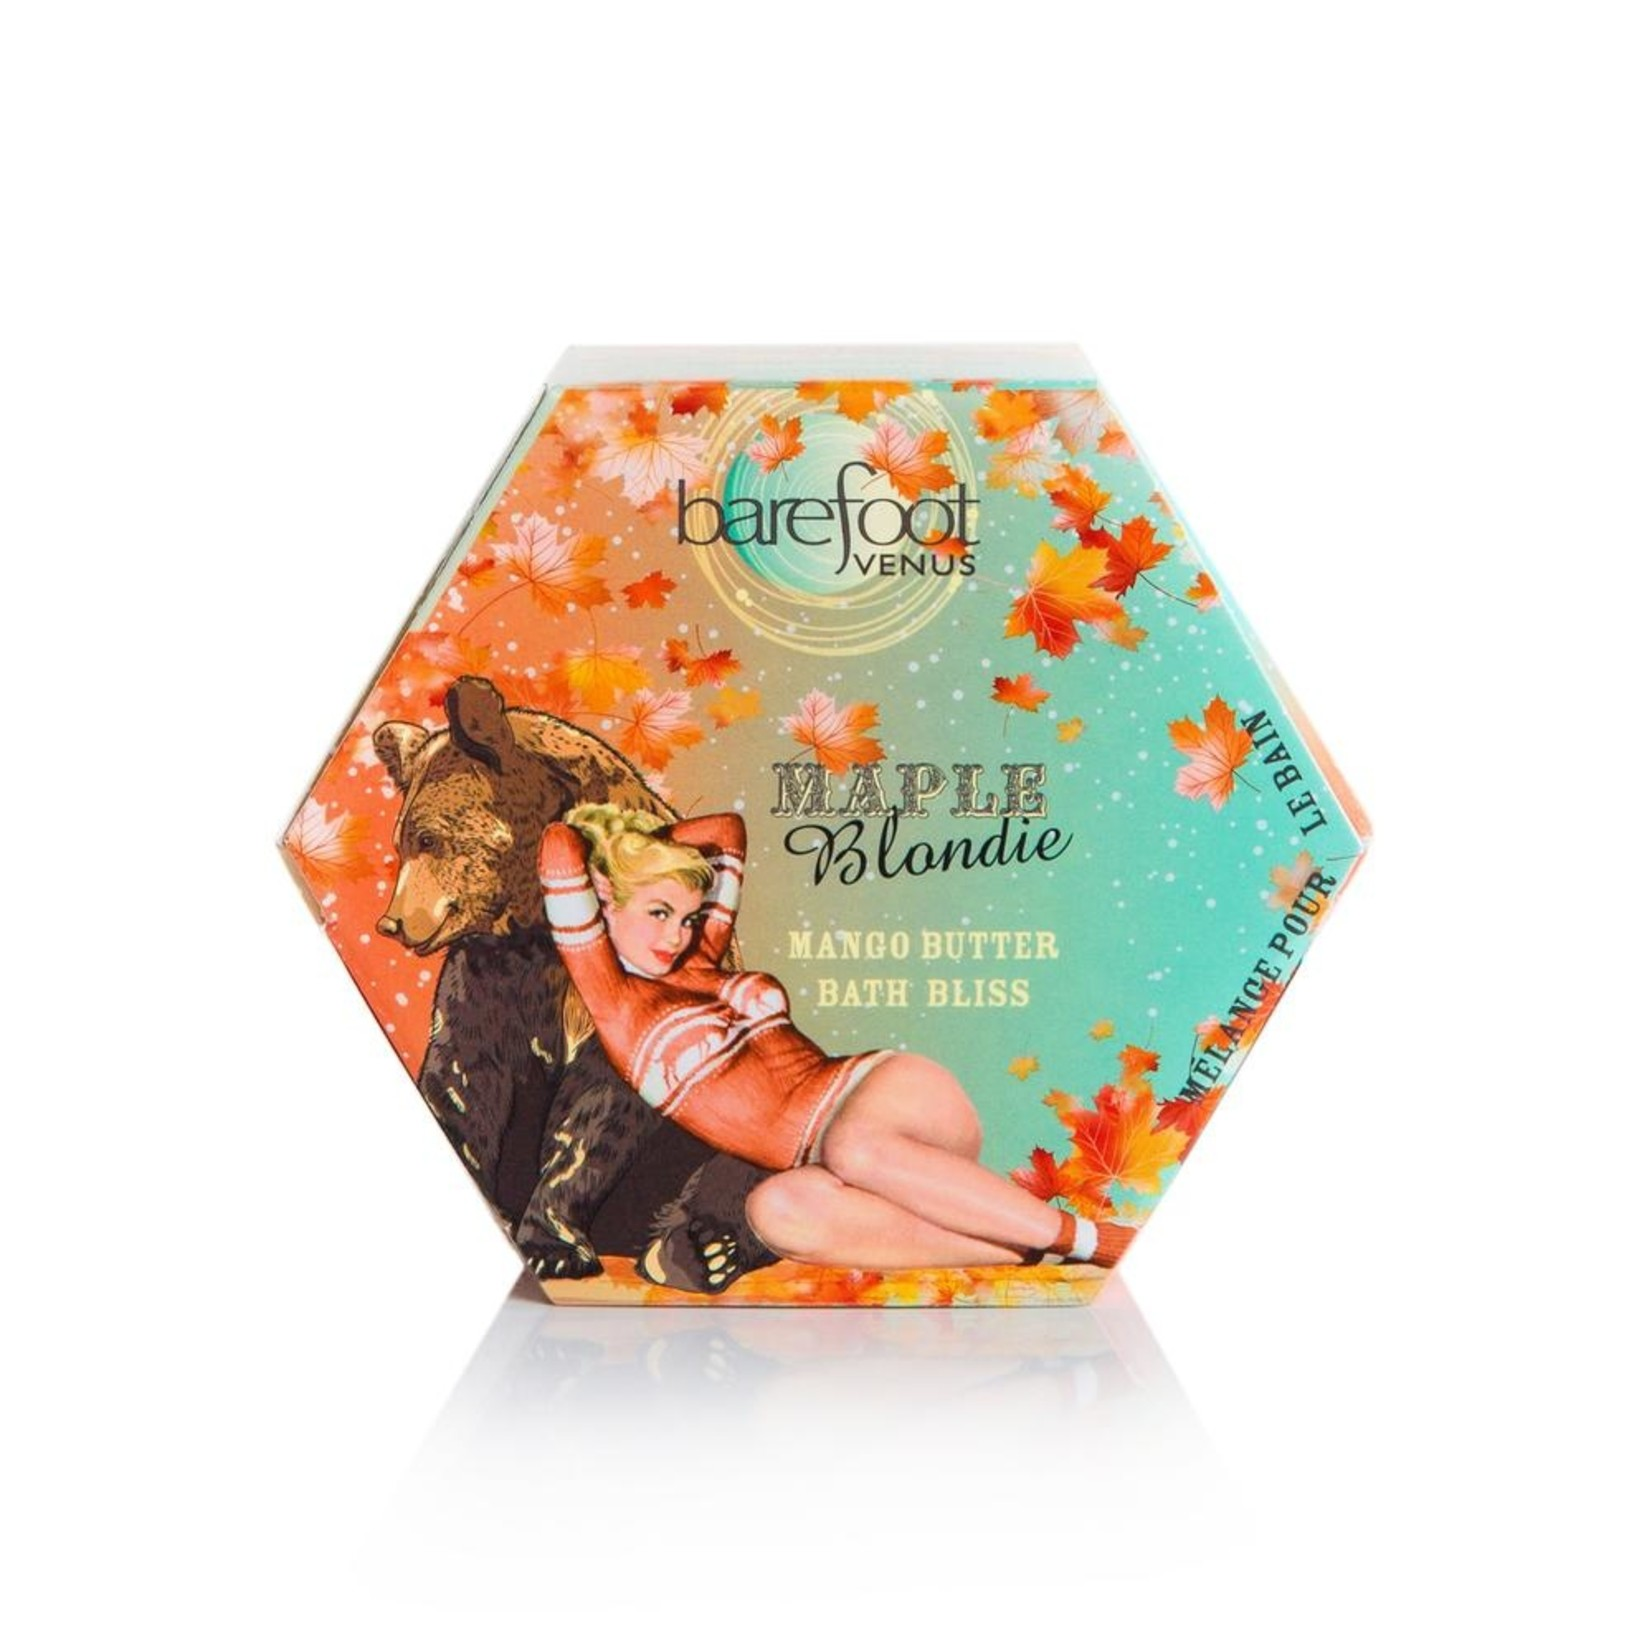 Barefoot Venus Maple Blondie ~ Bath Bliss